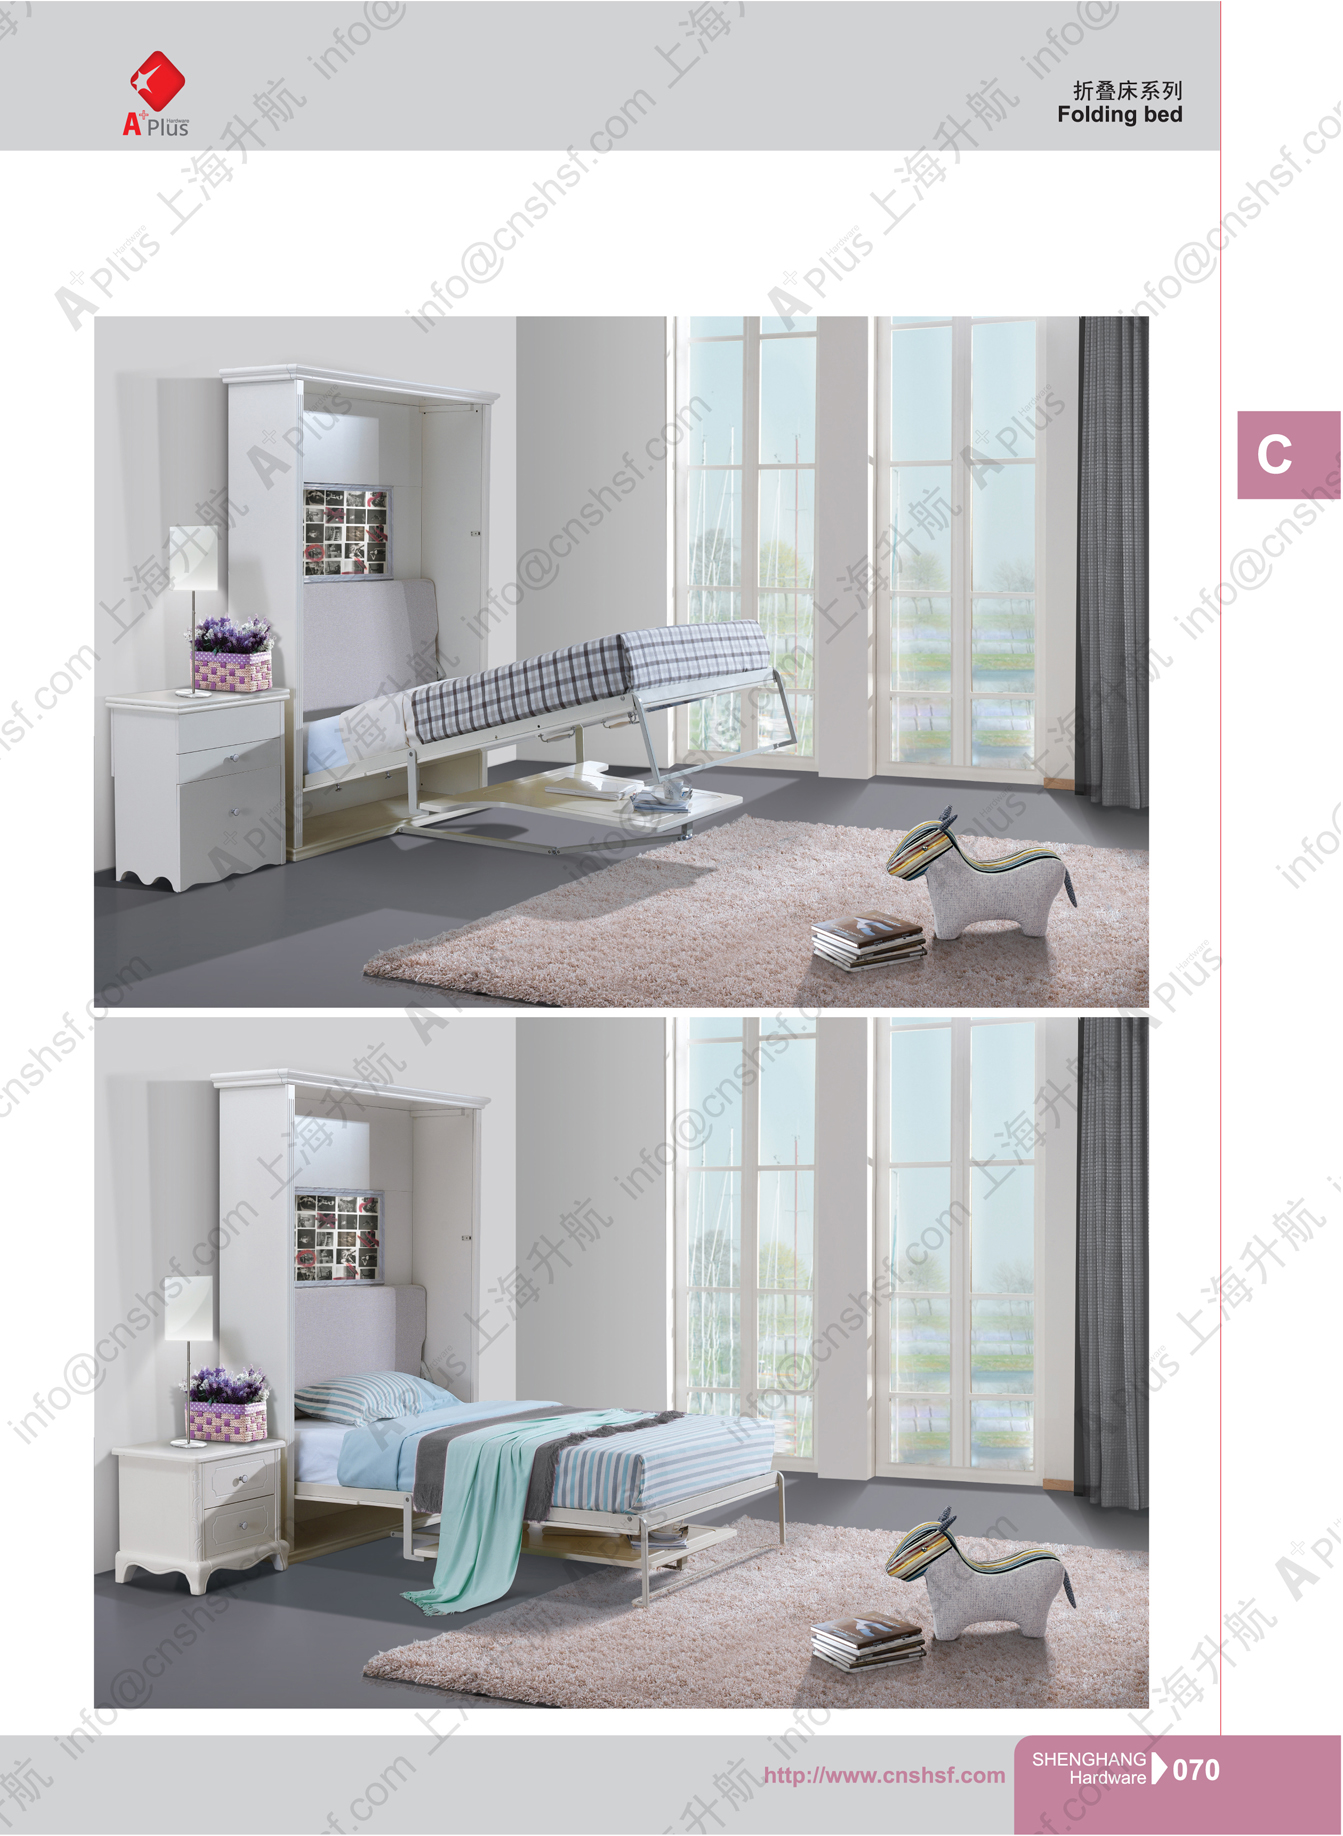 - WBED002 Wall Bed Mechanism With Folding Table, Wall Bed Mechanism